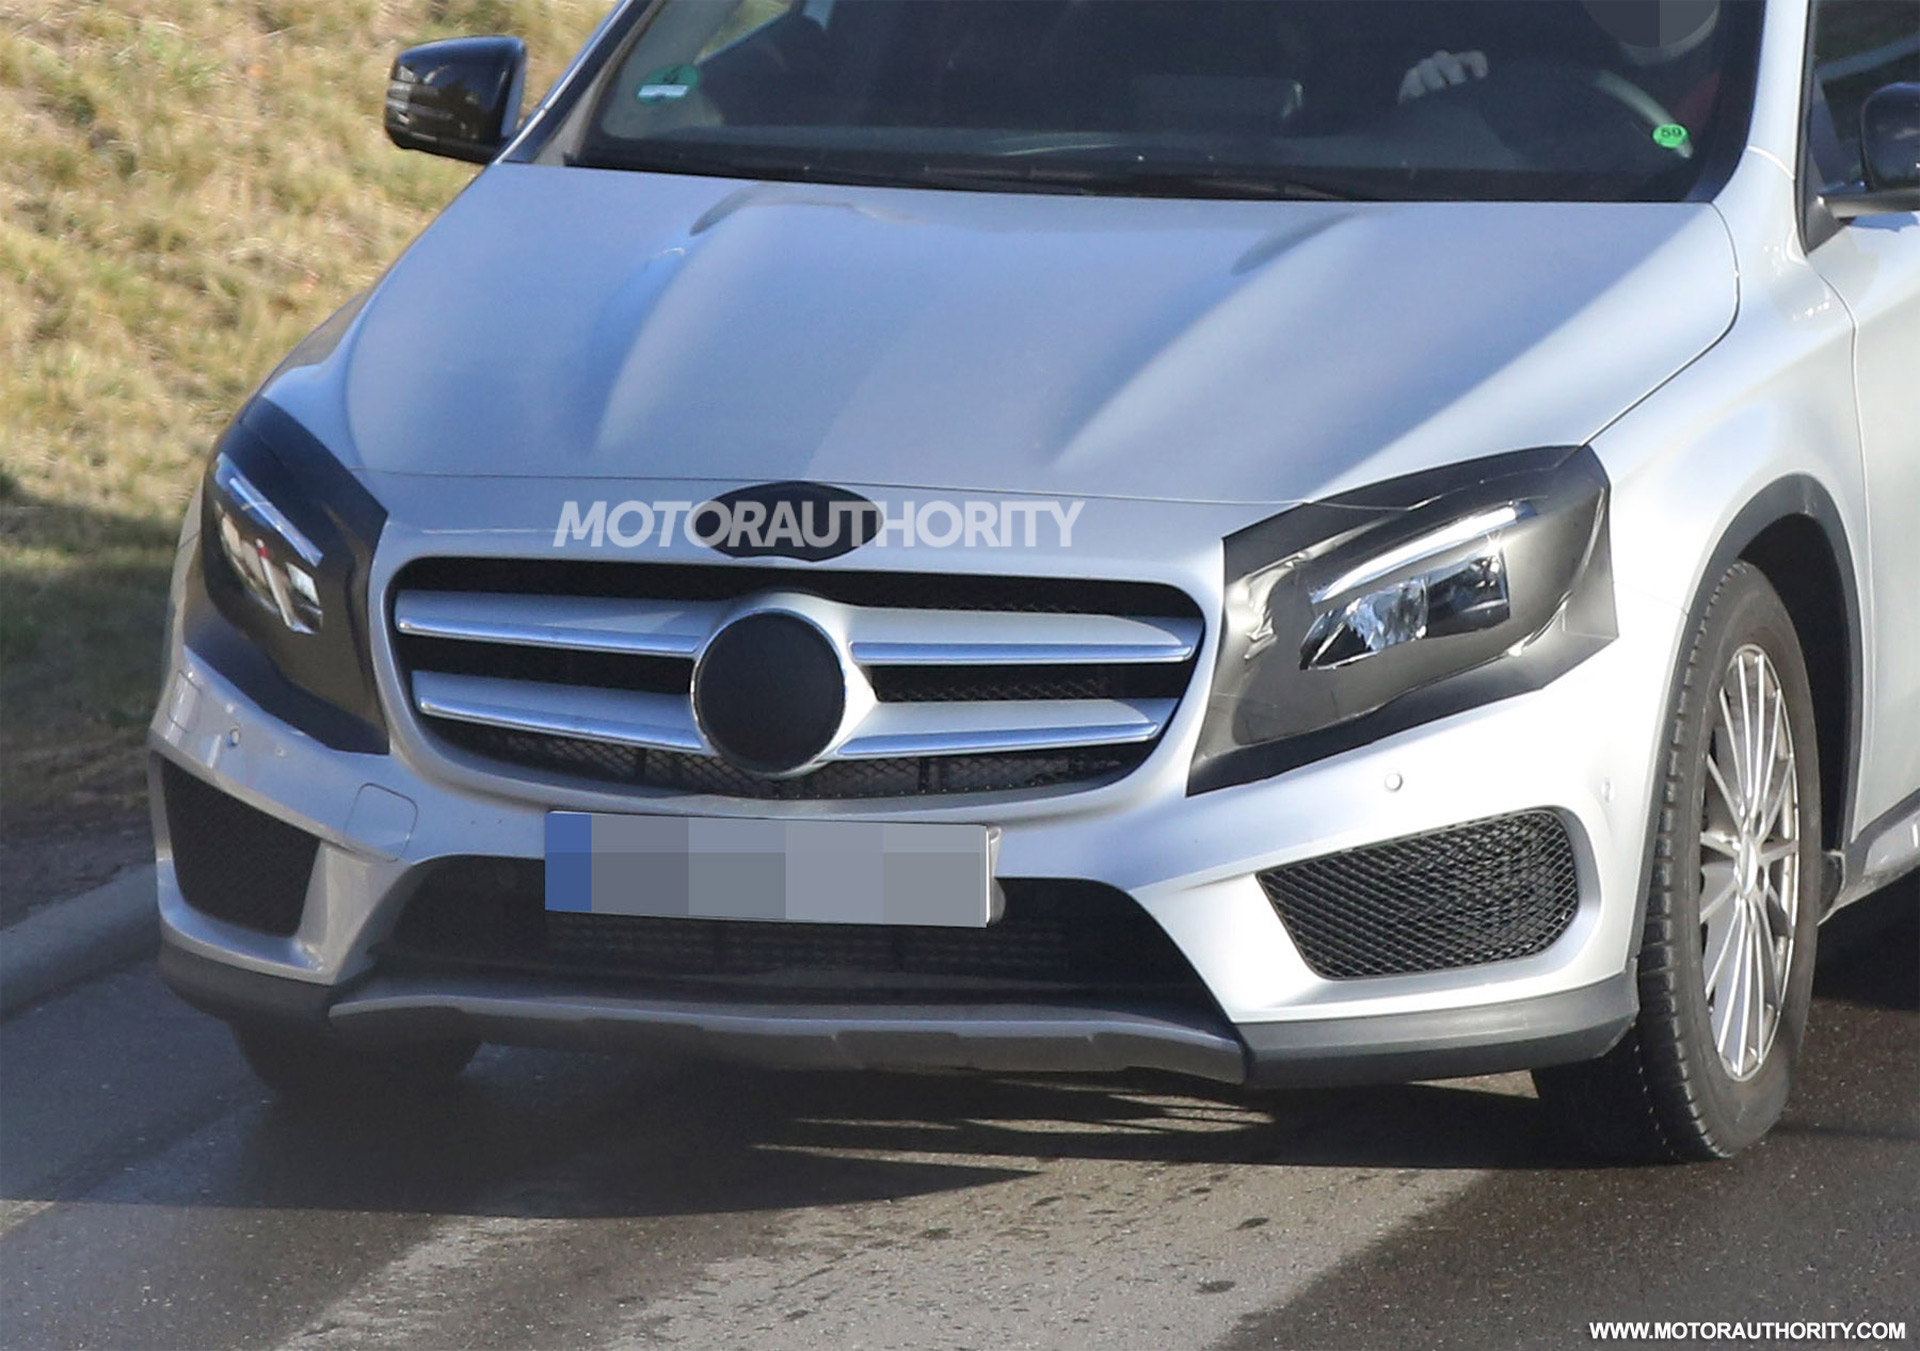 2017 mercedes benz gla class facelift spy shots image via s baldauf ...